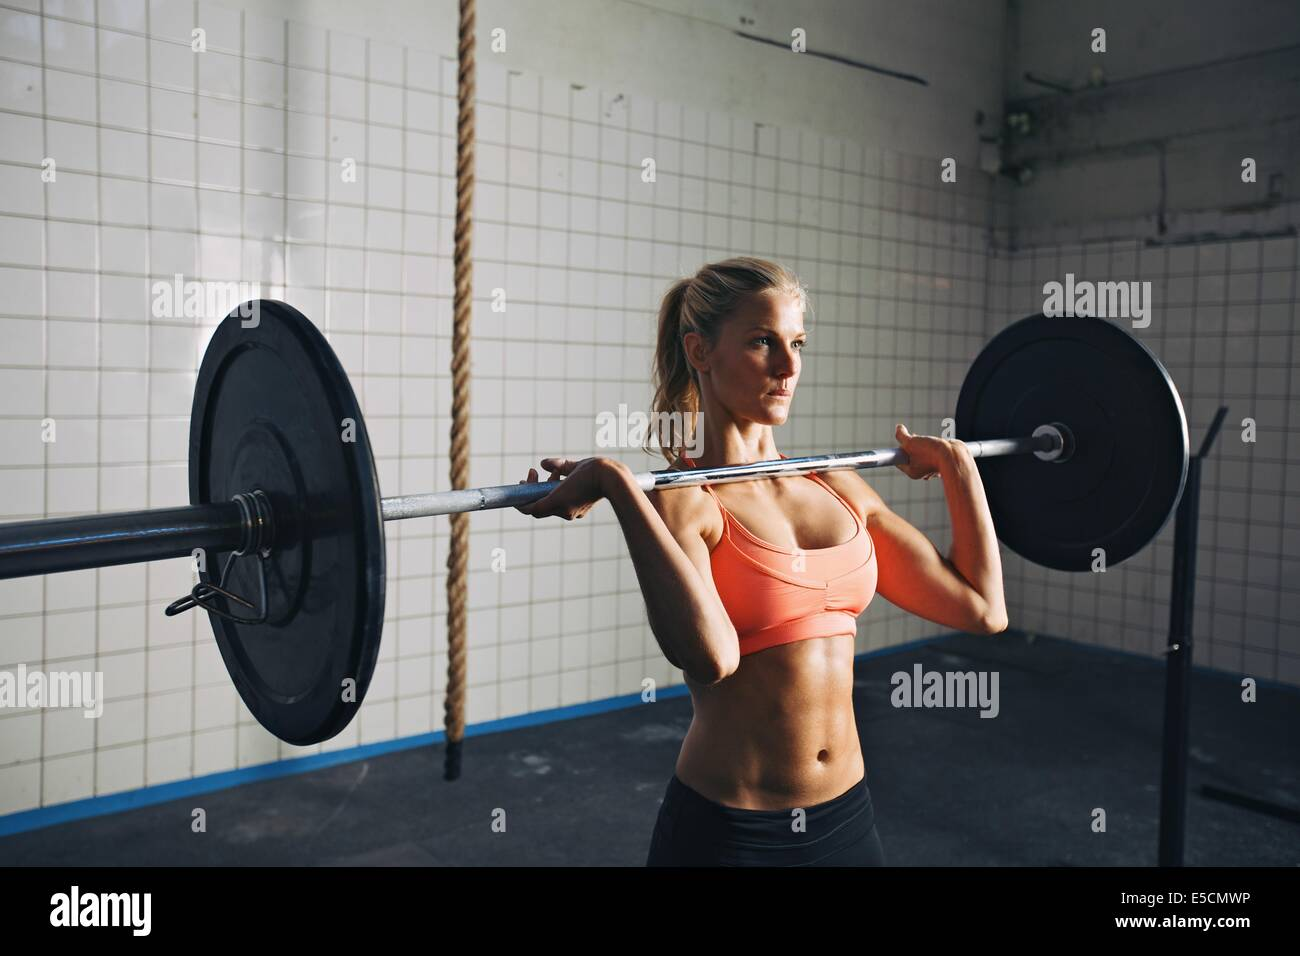 Fitness woman concentrating while lifting barbells. Strong woman lifting weights in crossfit gym. Caucasian female - Stock Image